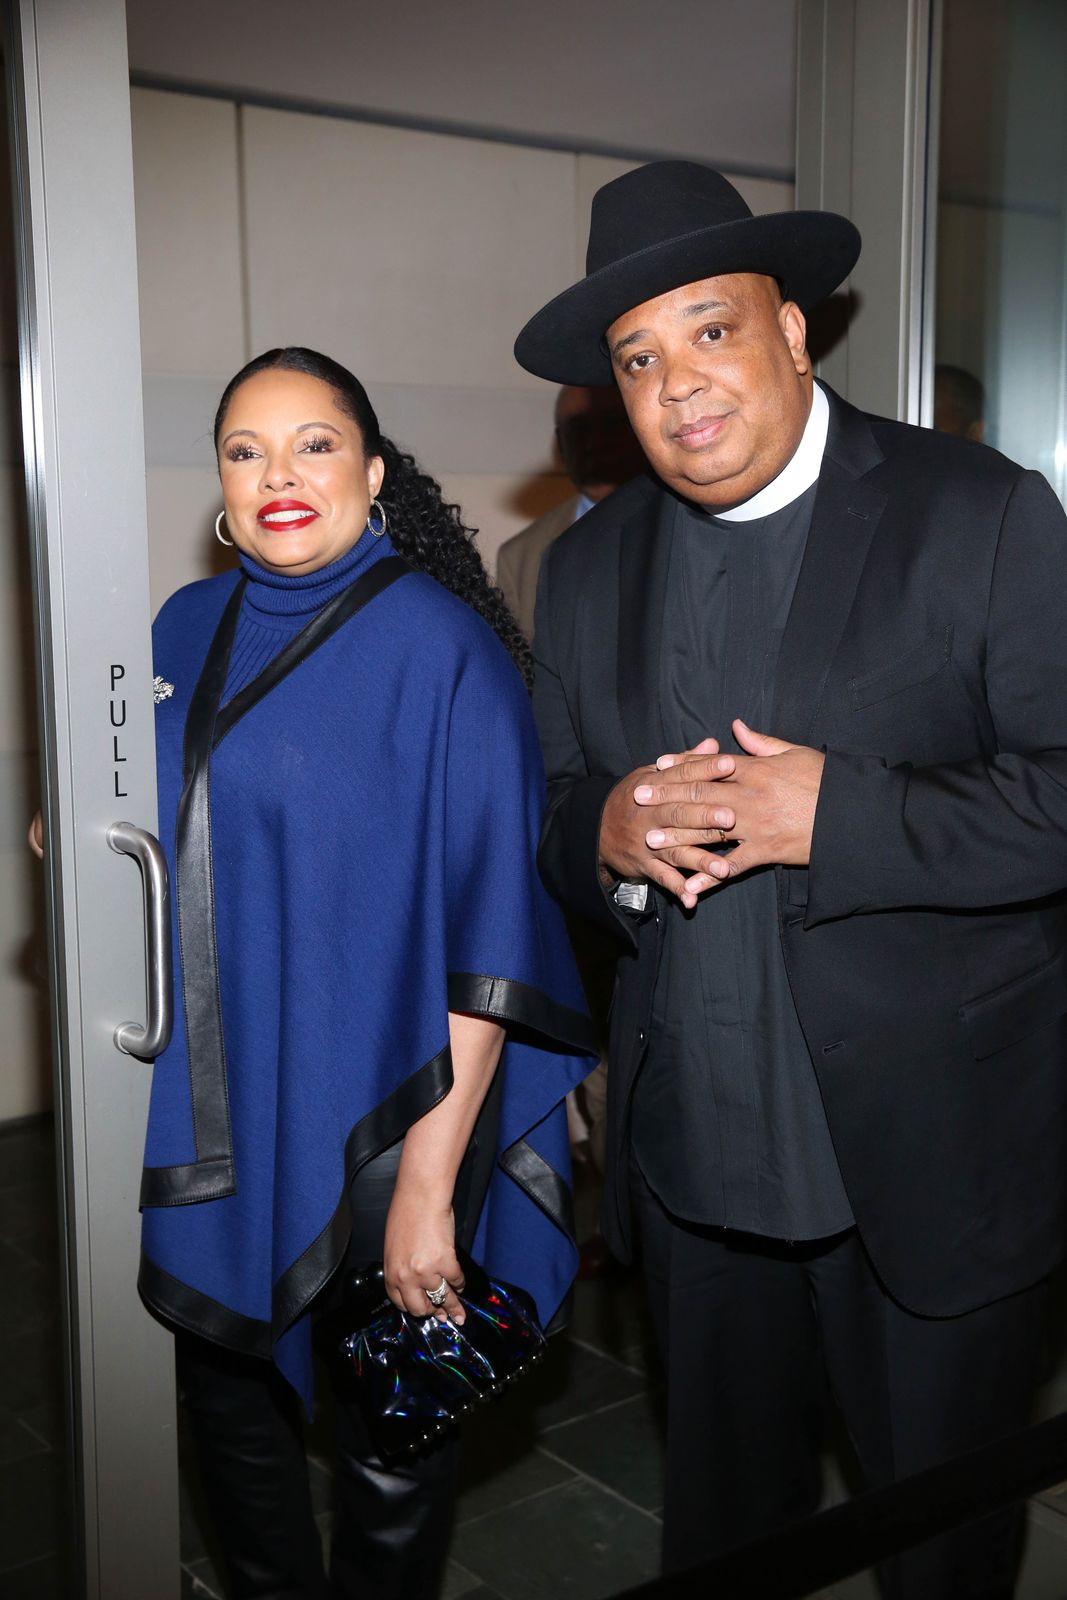 """Joseph """"Rev Run"""" and wife Justine Simmons at the 36th Annual Caucus Awards Dinner in 2018 in Los Angeles 